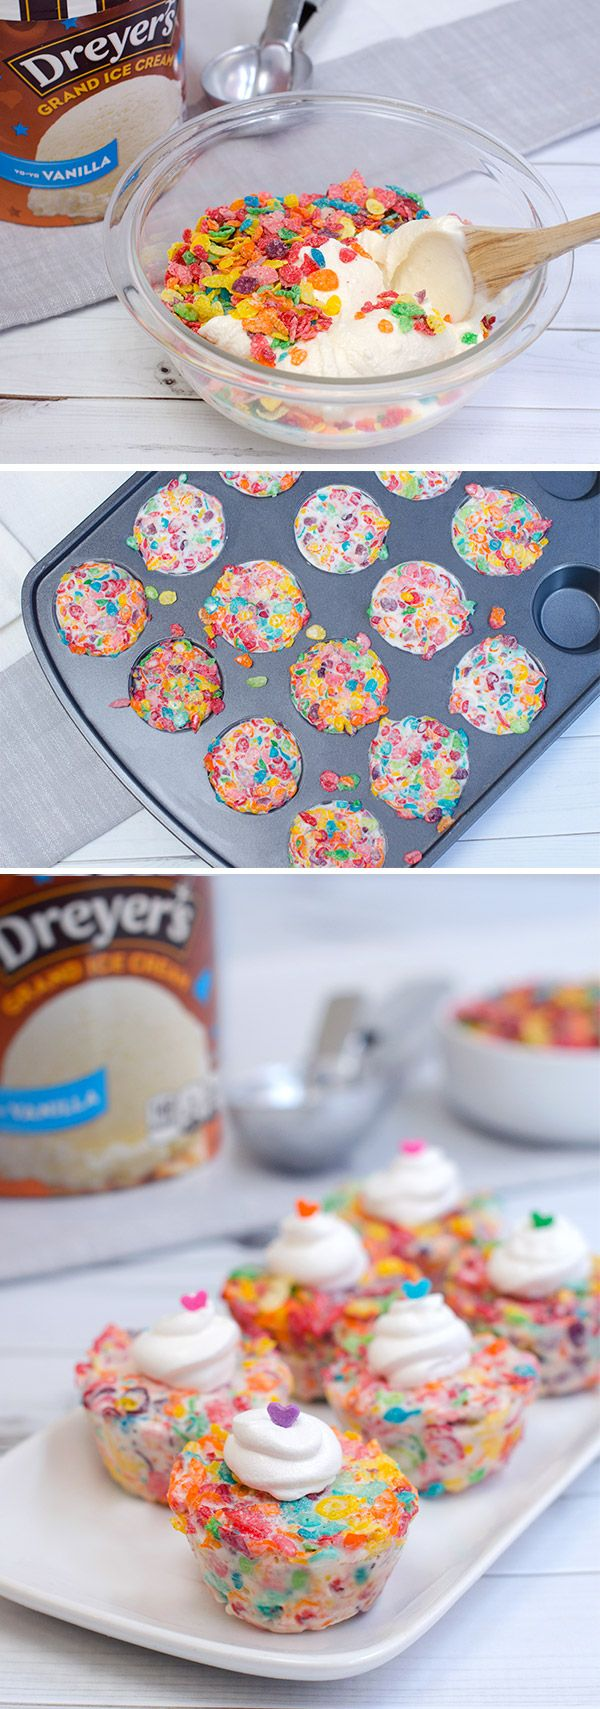 Dreyer's Funfetti Crunchers: These bite-sized treats are colorful, crunchy and kid-approved! Simply mix Dreyer's Vanilla ice cream with fruity cereal, press into muffin tins and refreeze. Then, pop them out to enjoy a fun-tastic dessert that will turn any ordinary night into a party!